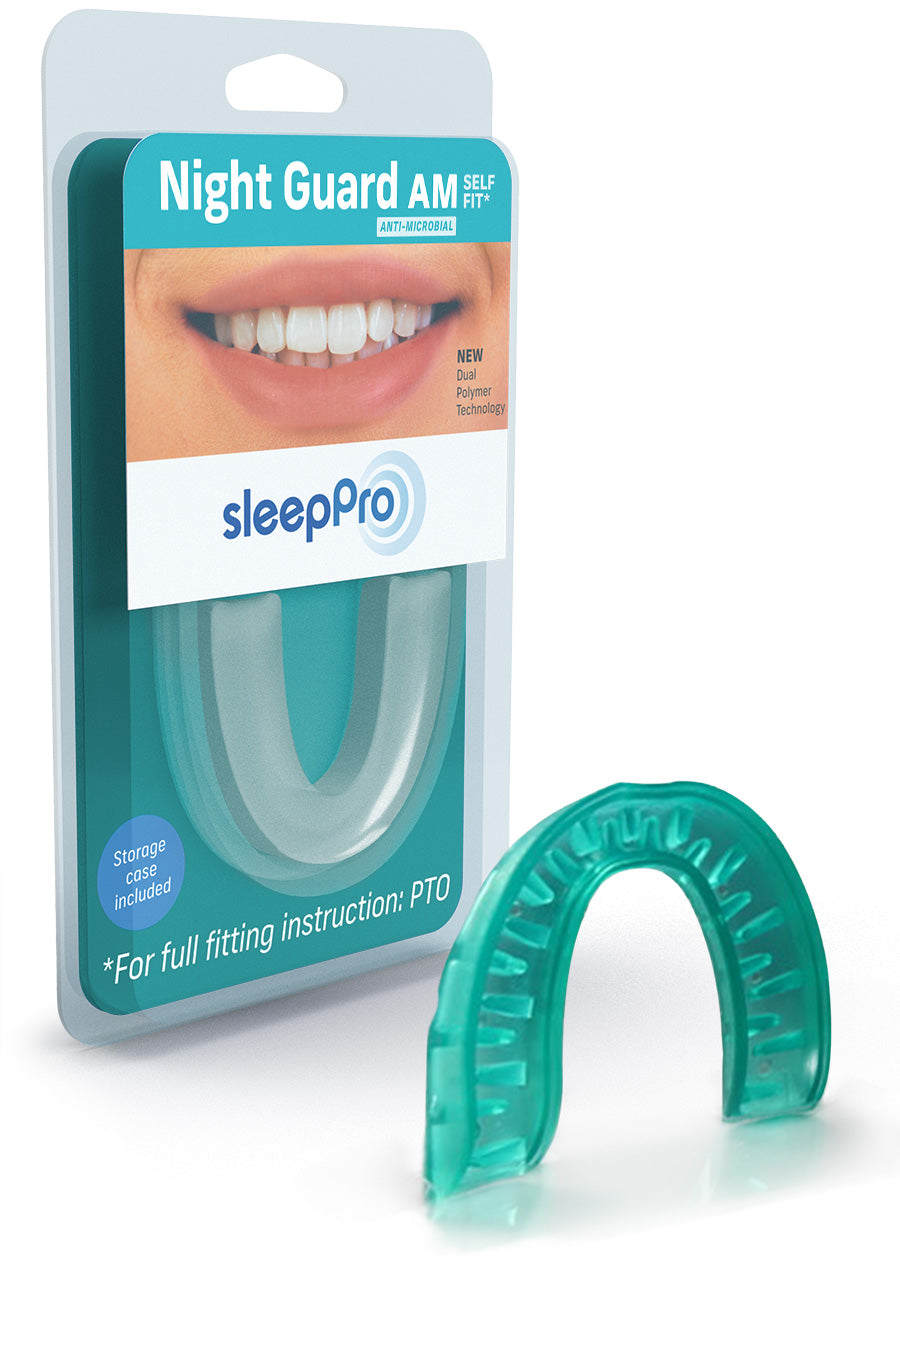 SleepPro Self Fit Night Guard AM Option - SleepPro Sleep Solutions